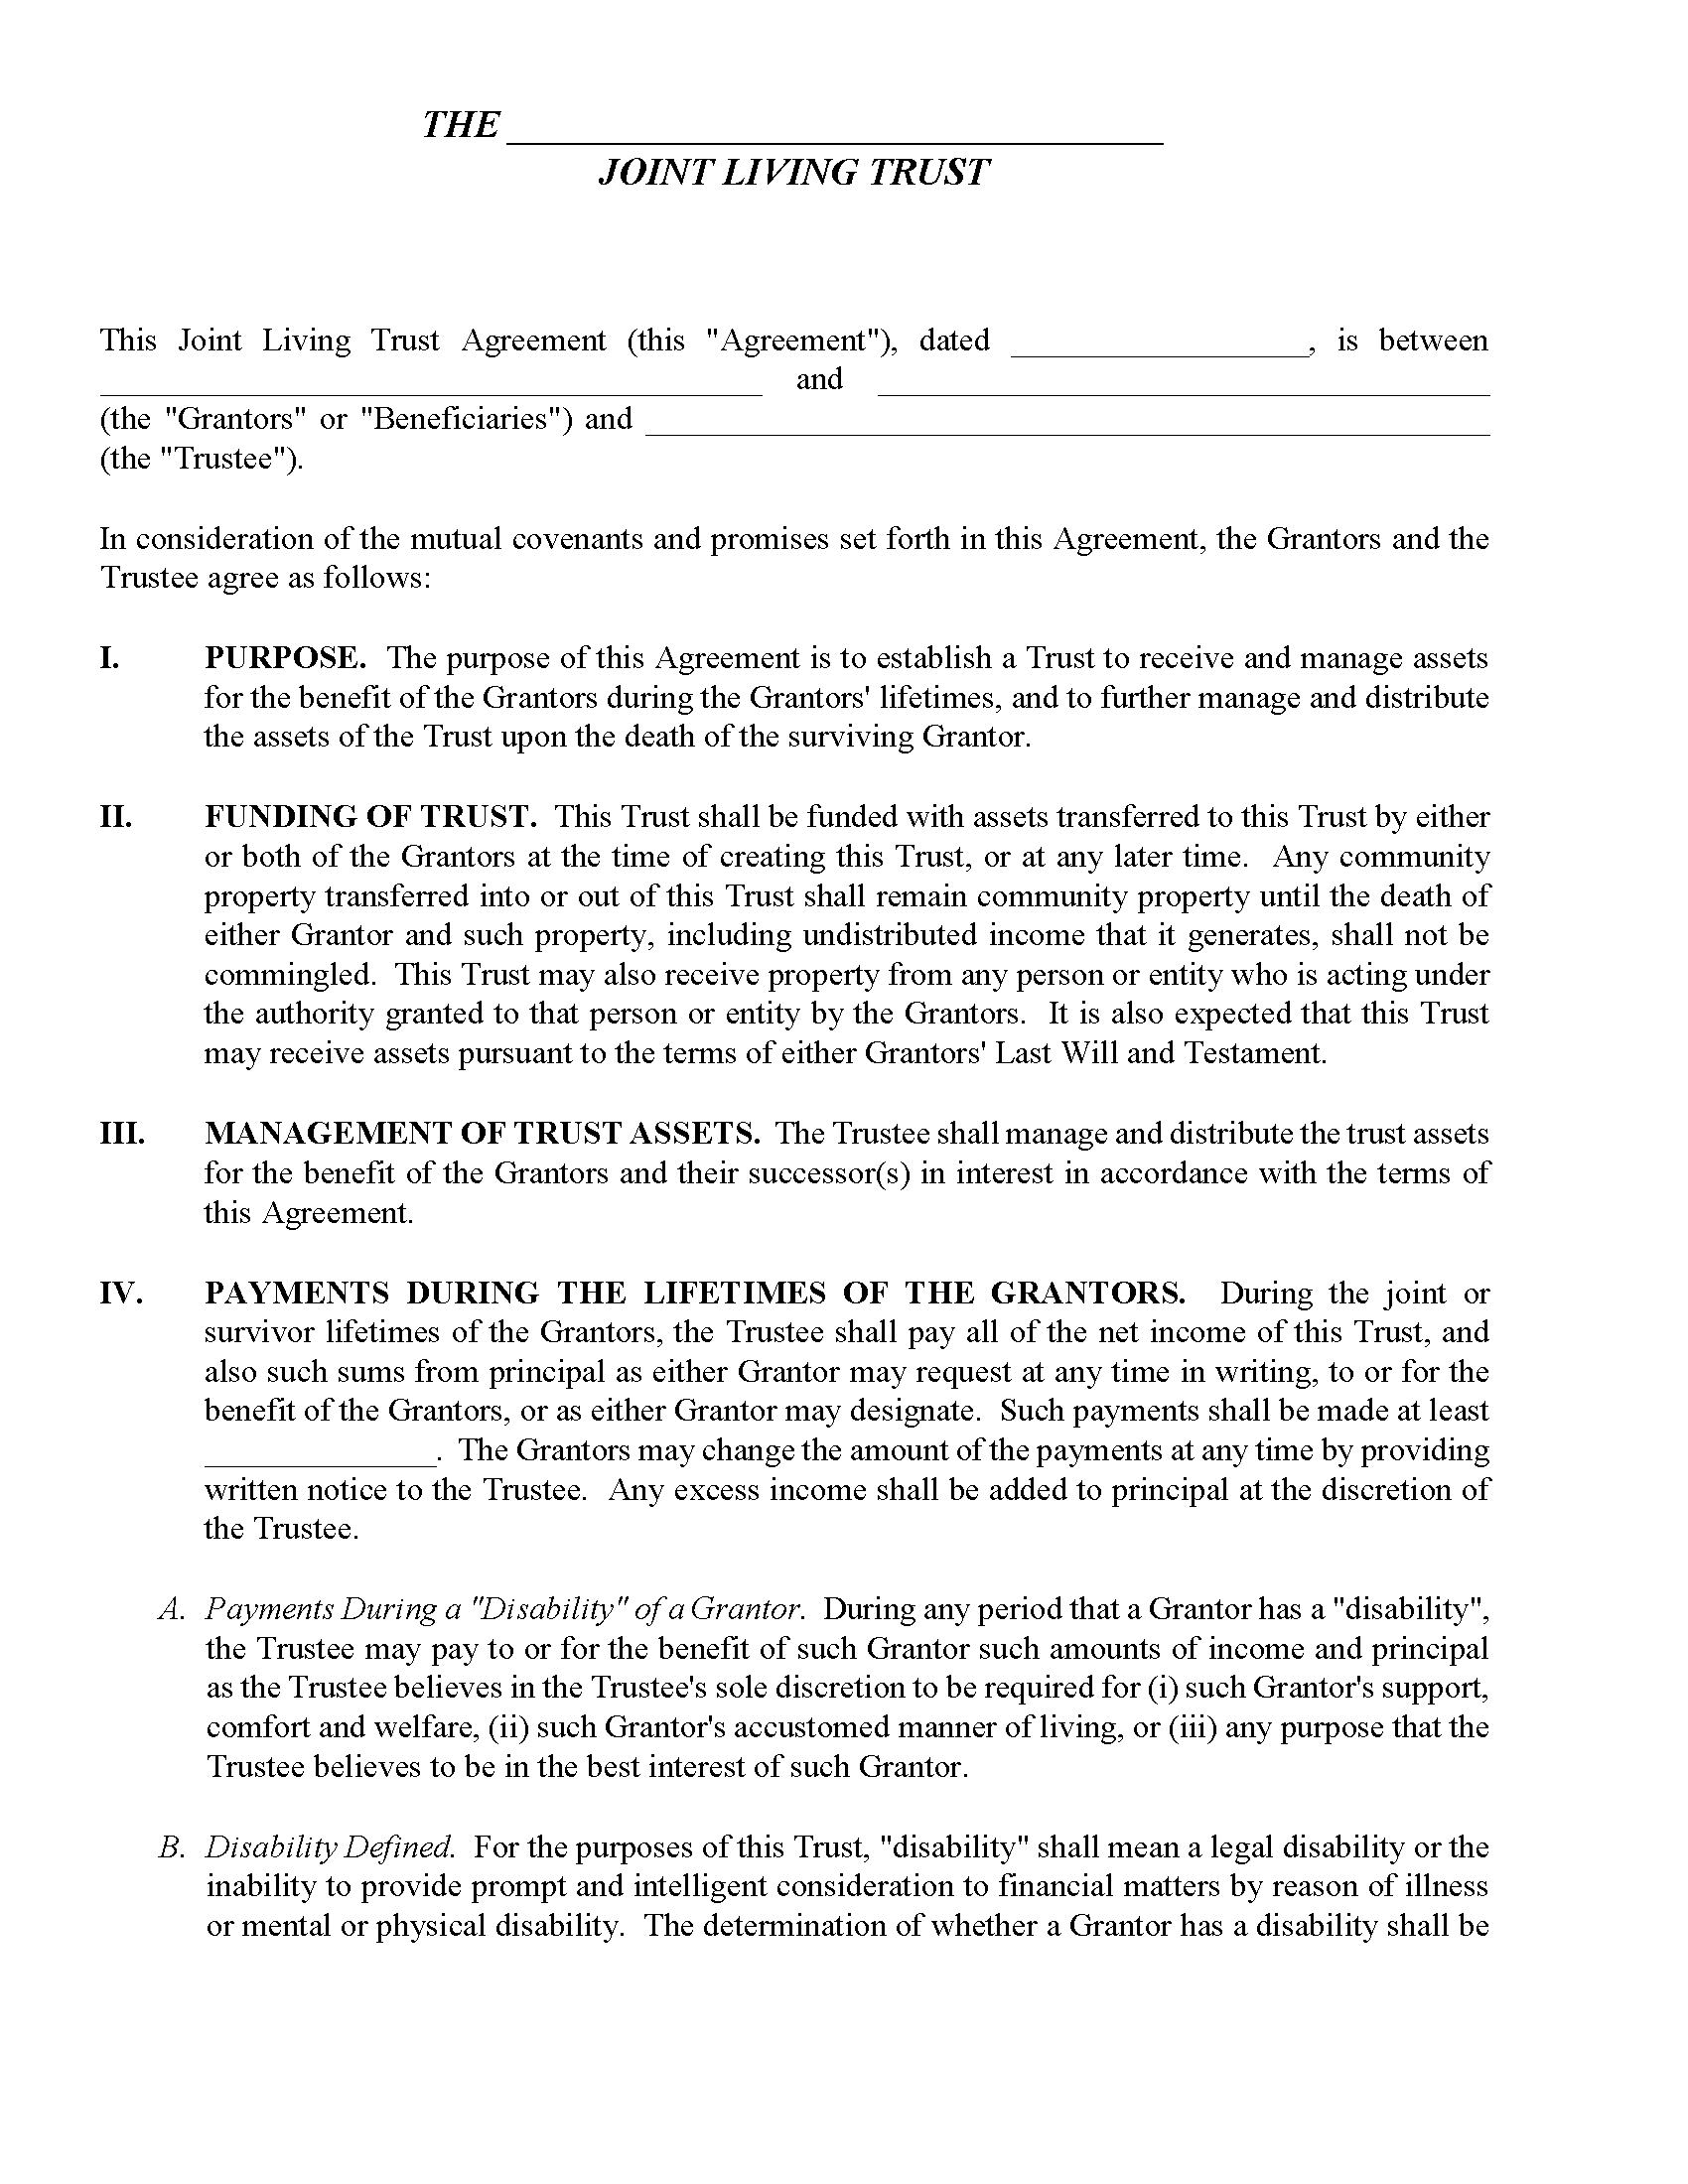 North Carolina Joint Living Trust Form